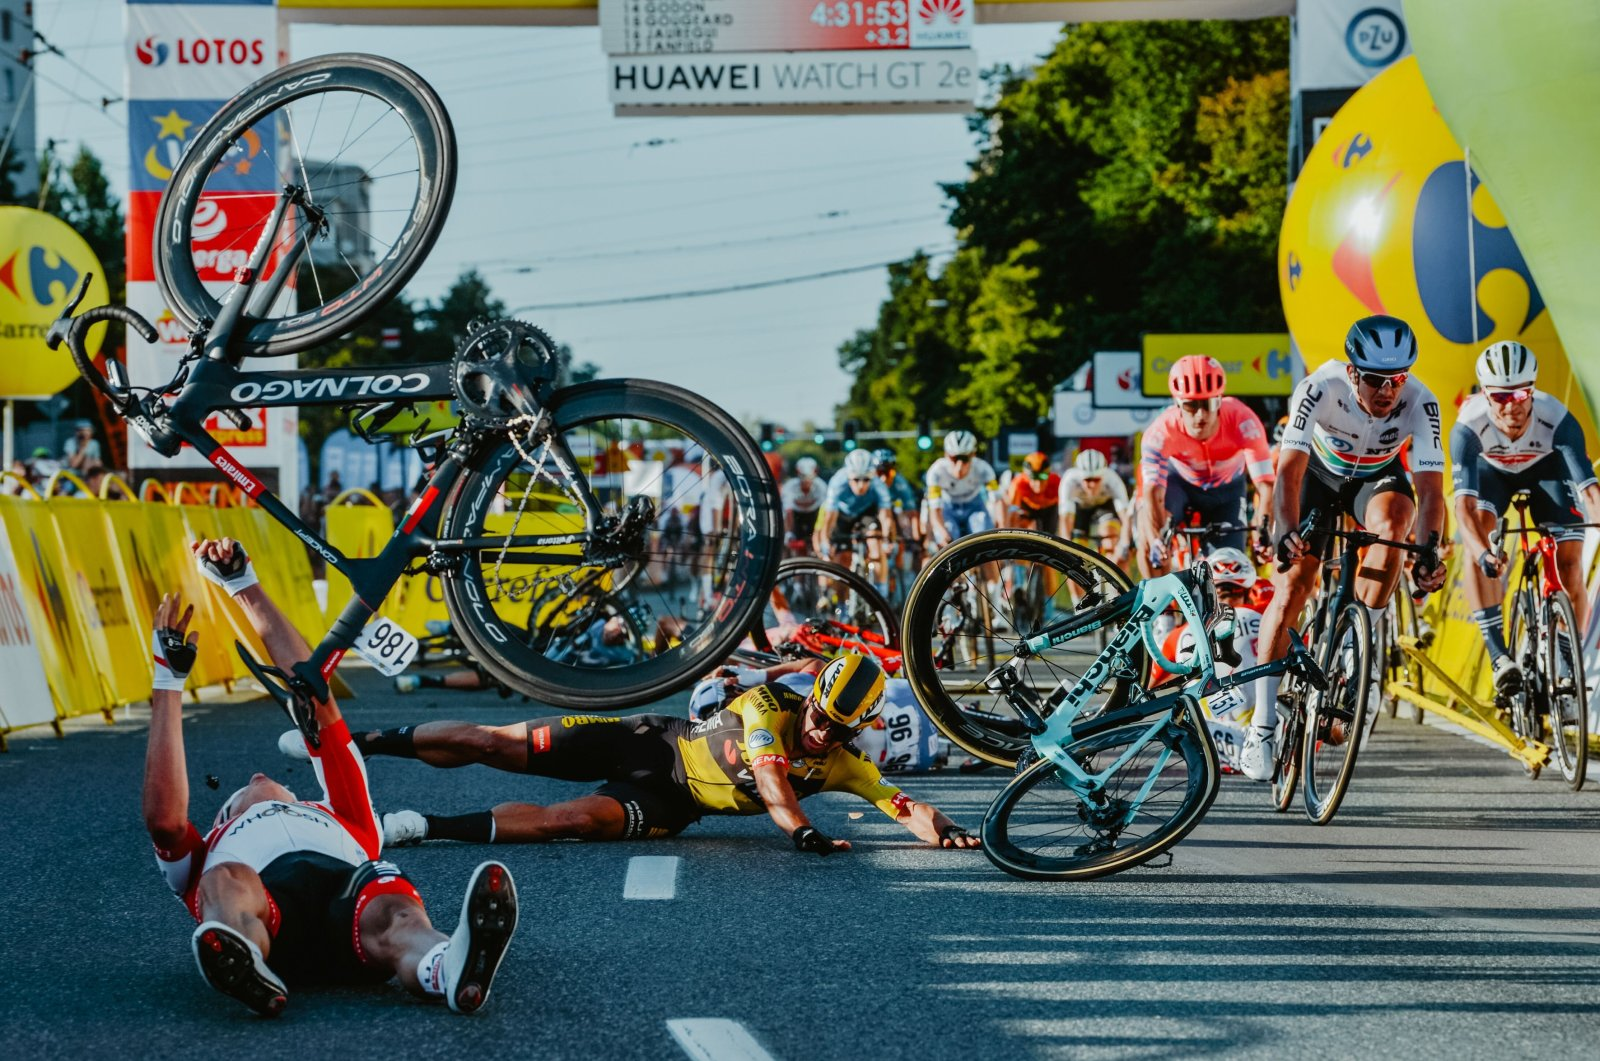 Dutch cyclist Dylan Groenewegen, in yellow jersey, and fellow riders collide during the opening stage of the Tour of Poland race in Katowice, Poland, Aug. 5, 2020. (AFP Photo)